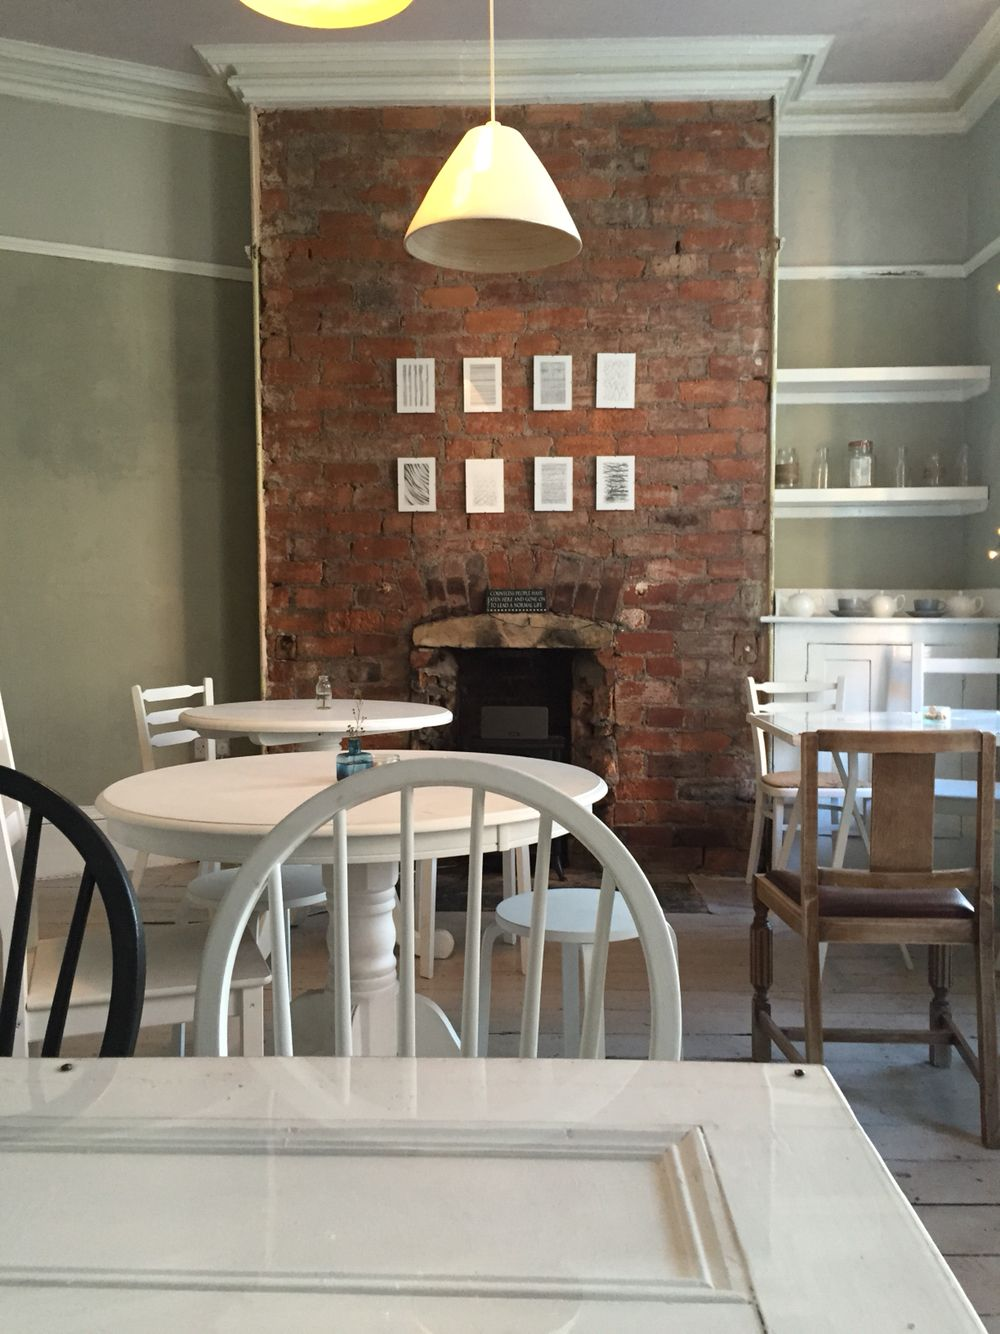 """Per the Yorkshire Post """"Graze is a homely cafe designed with similar ideals to that of Mrs Artha's, with a friendly atmosphere, quick grub turnaround and quality in spades.  From your simple sandwich fare to a selection of the finest pastries north of Paris, it caters for all."""""""